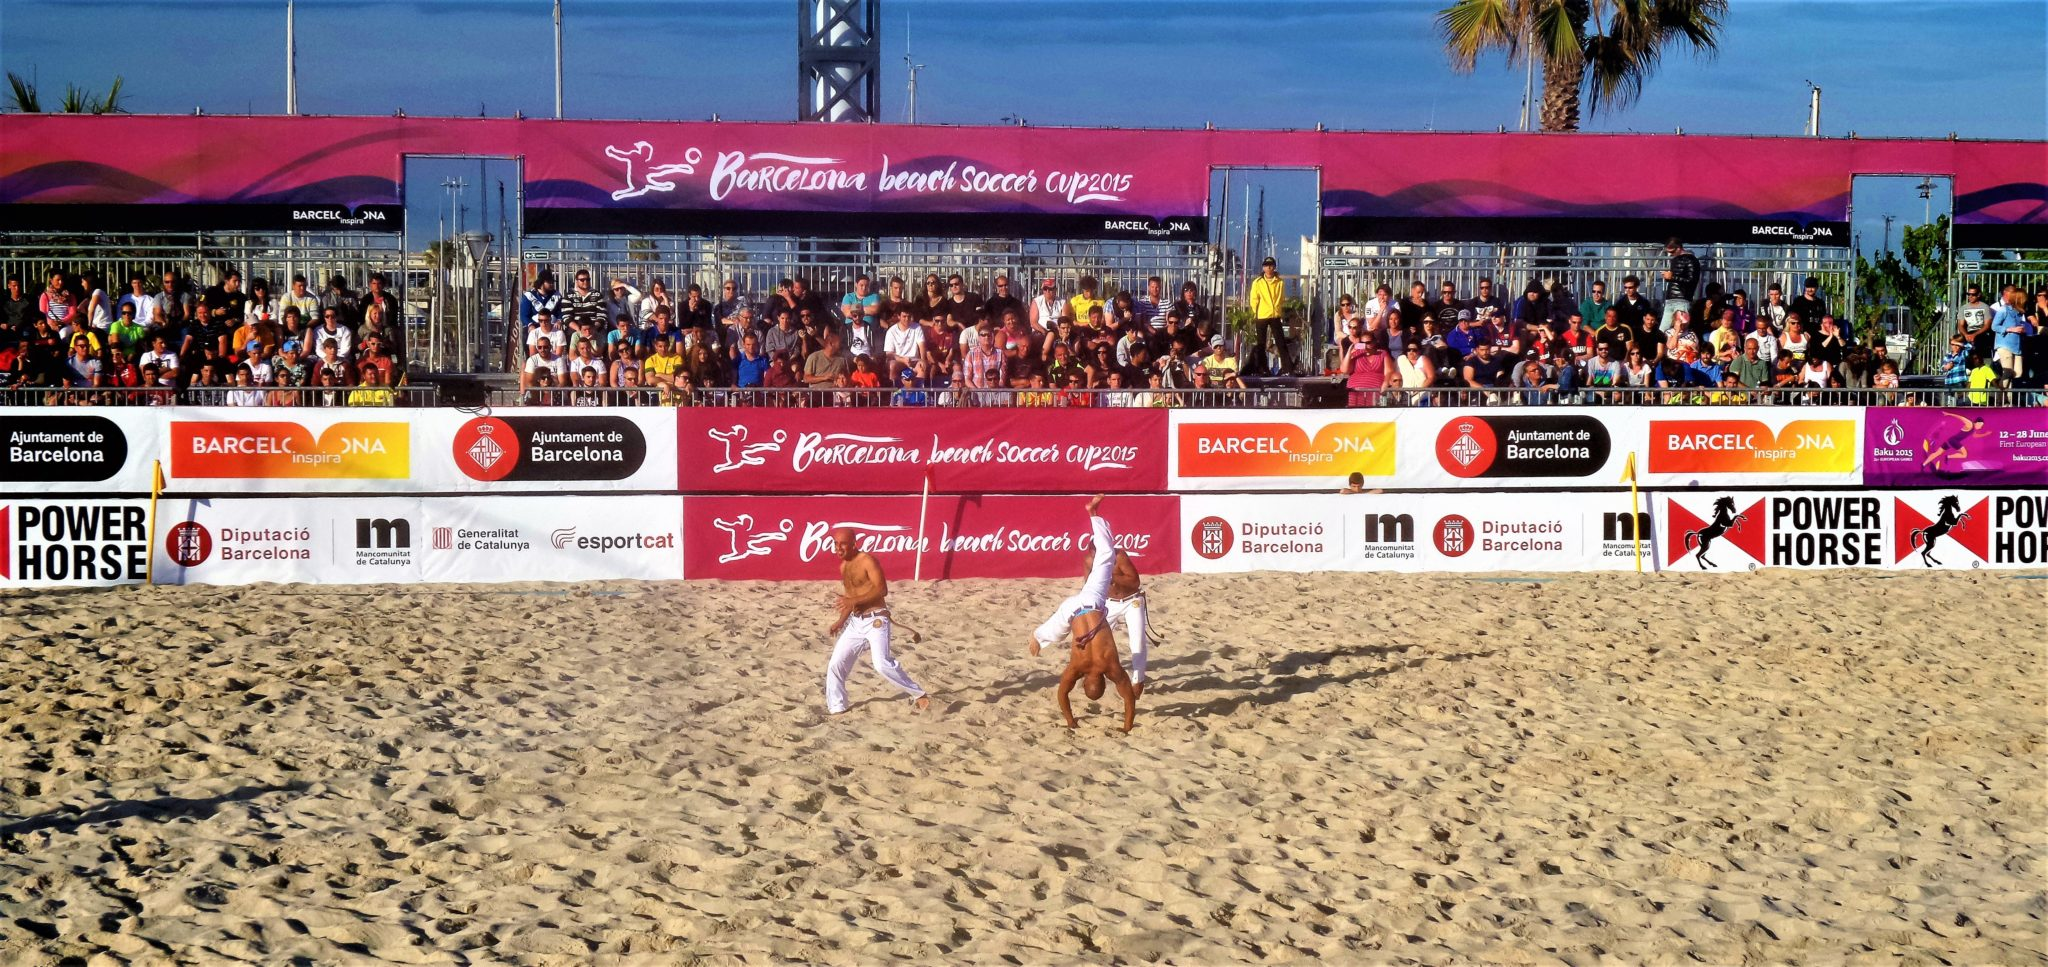 Entertainment at Beach soccer tournament, Barcelona, Spain